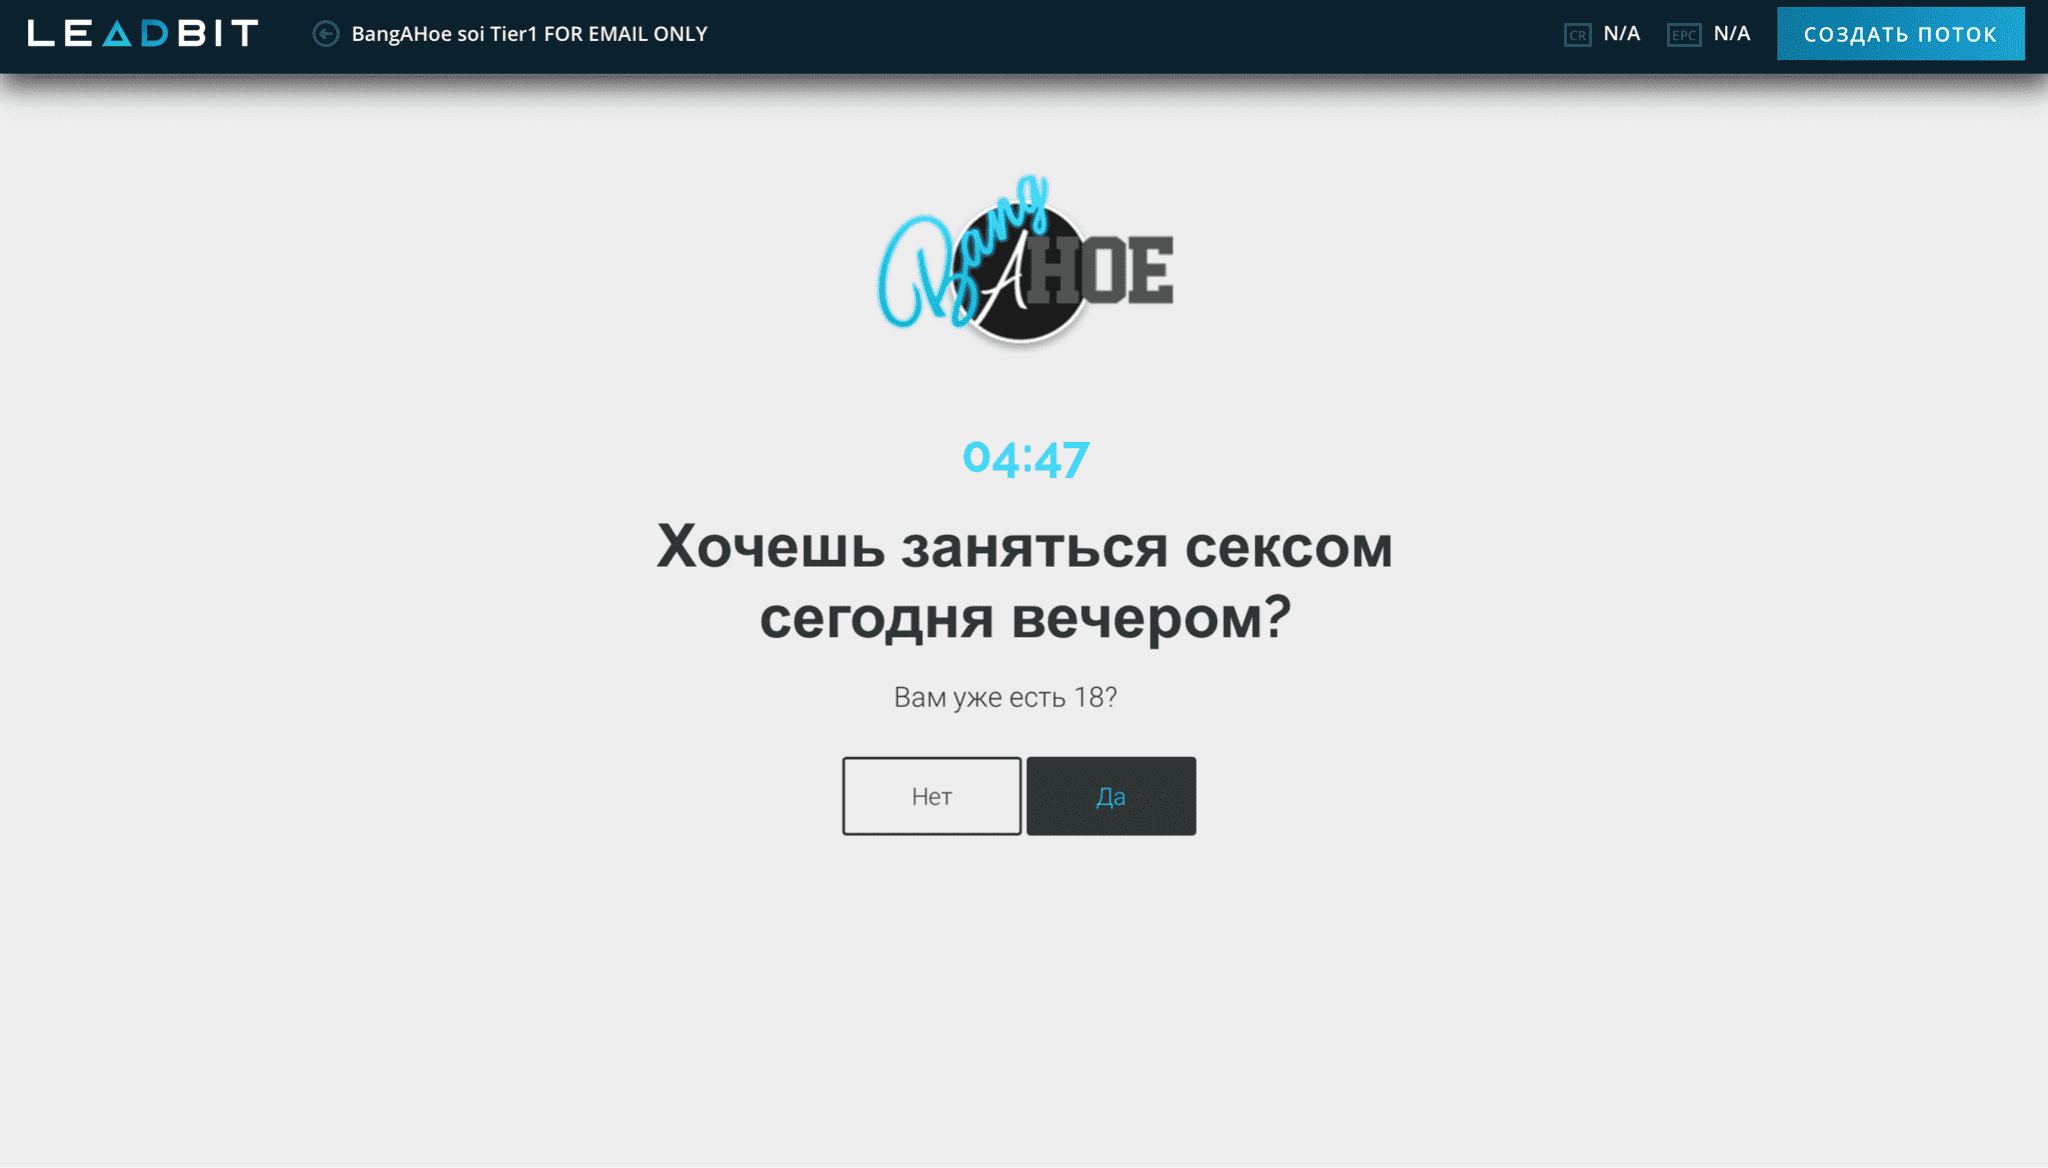 BANGAHOE SOI TIER1 FOR EMAIL ONLY дейтинг оффер